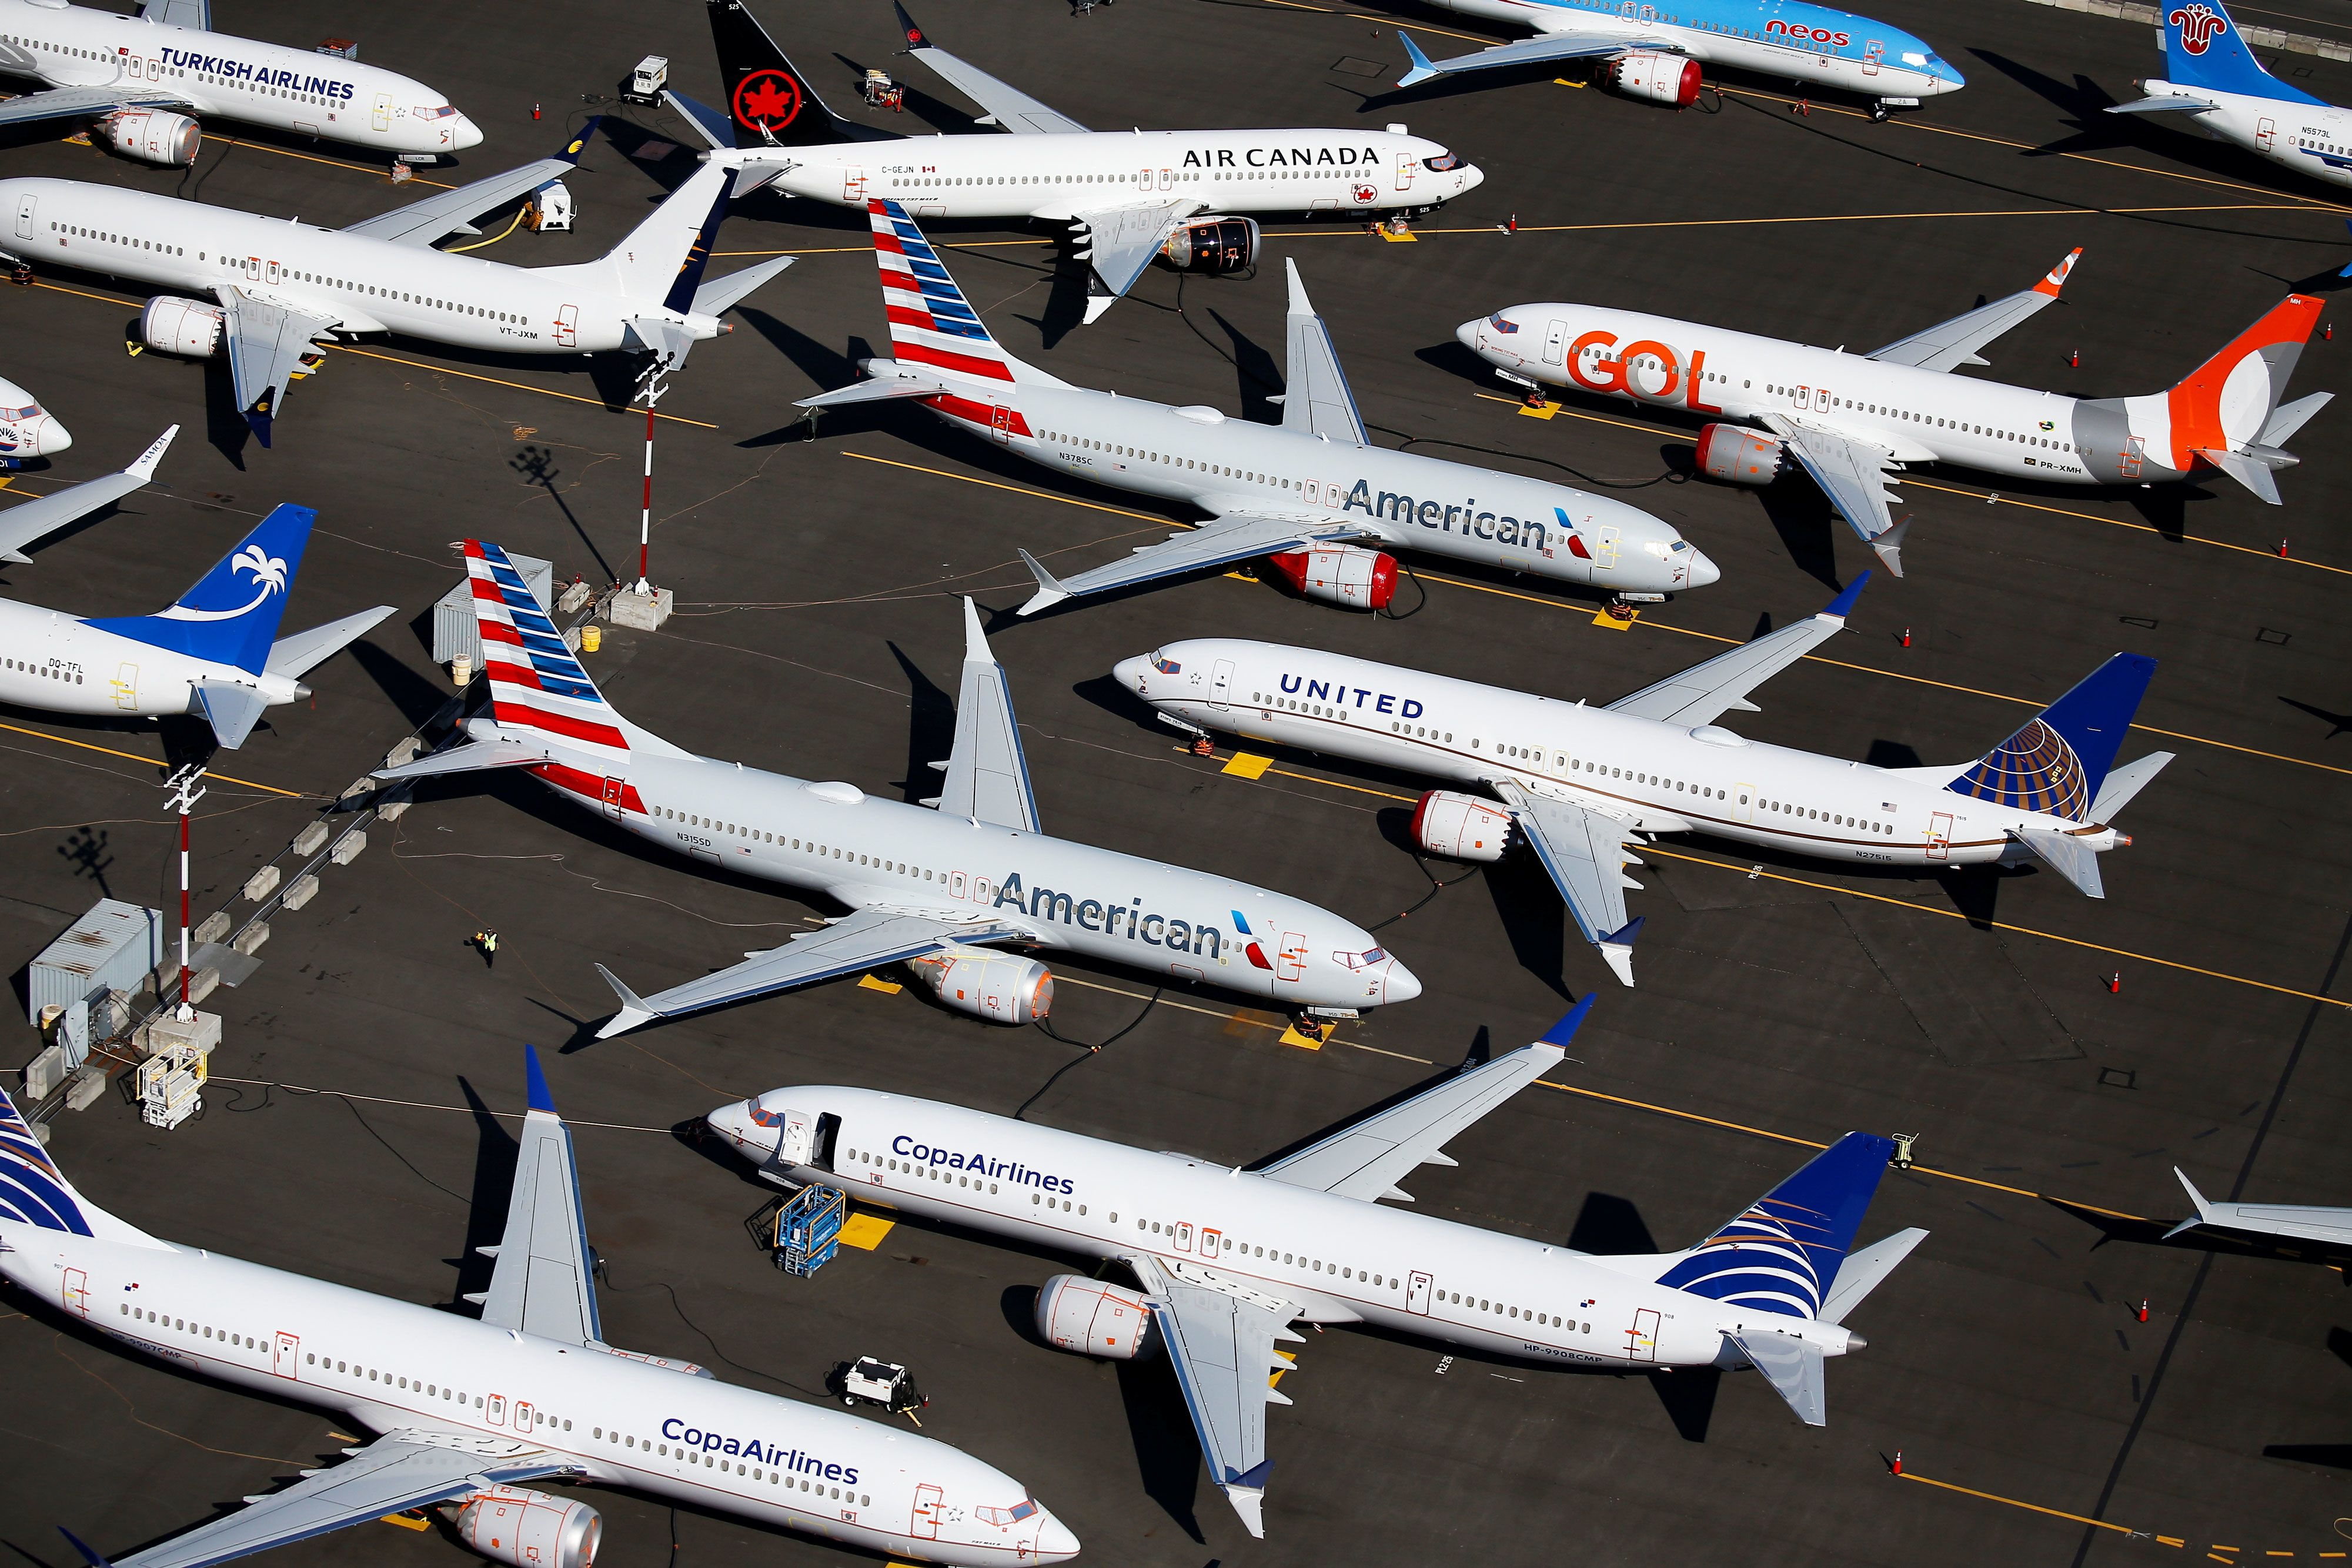 Changing Boeing's 737 Max name wouldn't fool anyone, says Sonnenfeld